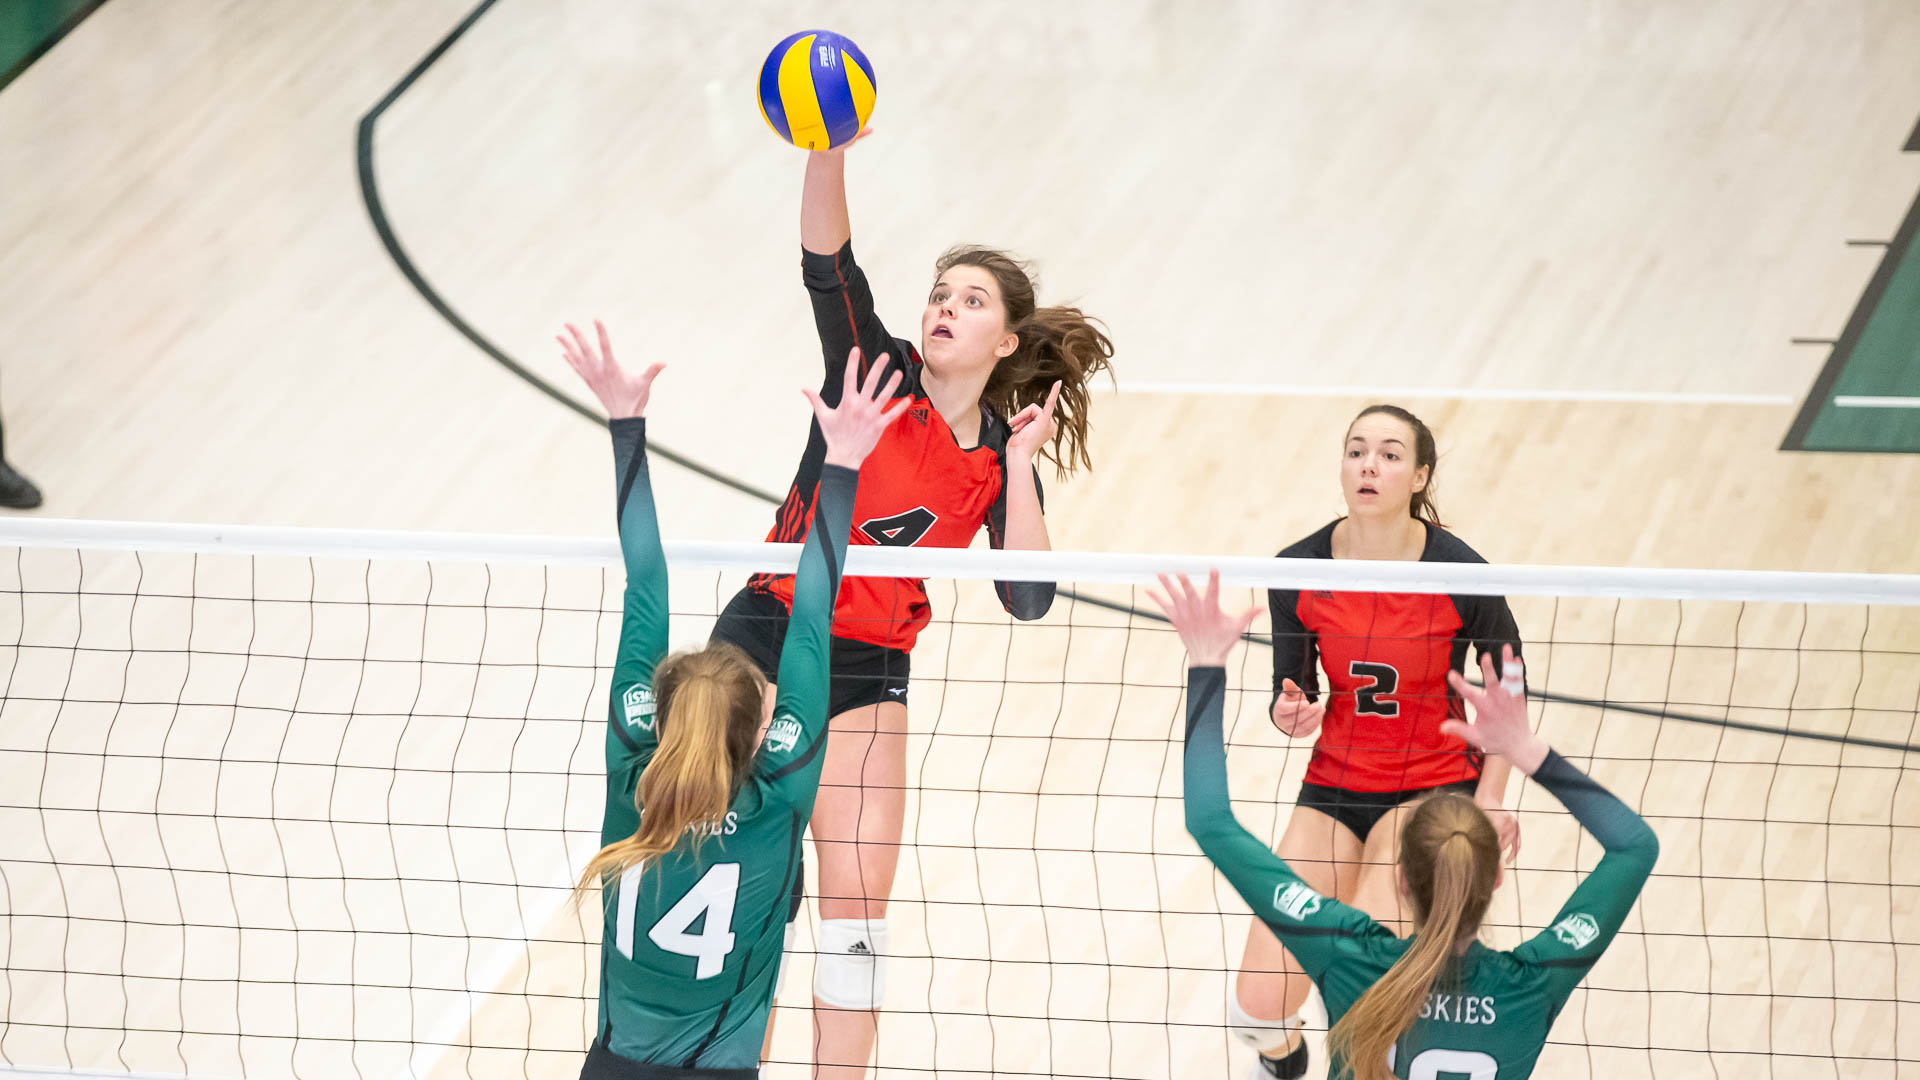 Middle blocker Taylor Boughton swings against the Saskatchewan Huskies block during women's volleyball action in Saskatoon, Saturday, Jan. 18, 2020. (Photo: Getmyphoto.ca)